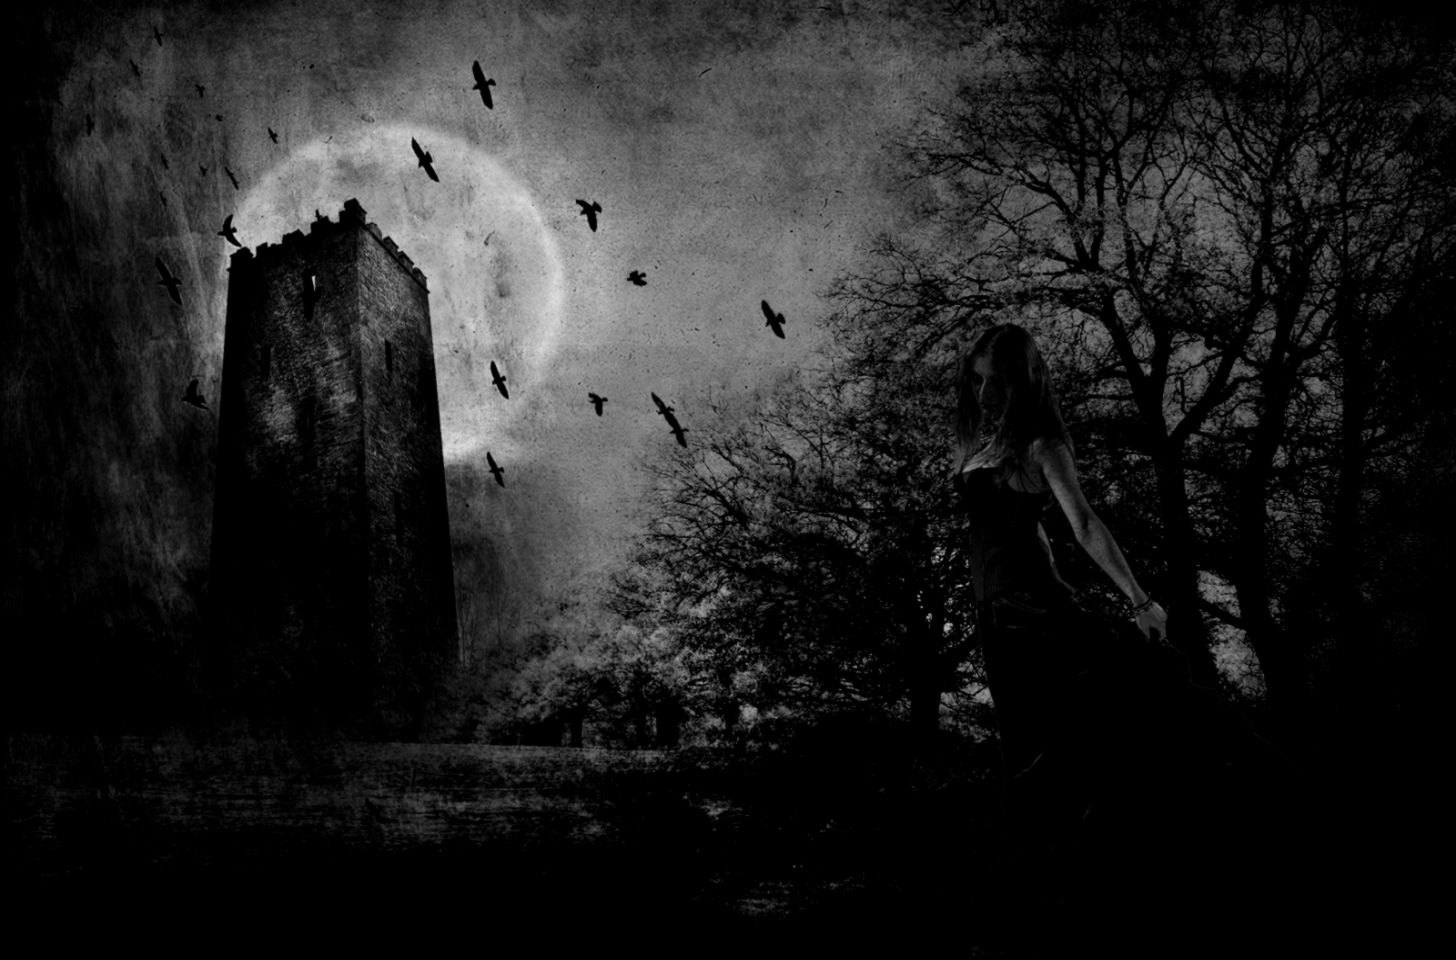 Gothic Wallpaper And Background Image Id200986 Background Gothic Black Metal 97210 Hd Wallpaper Backgrounds Download